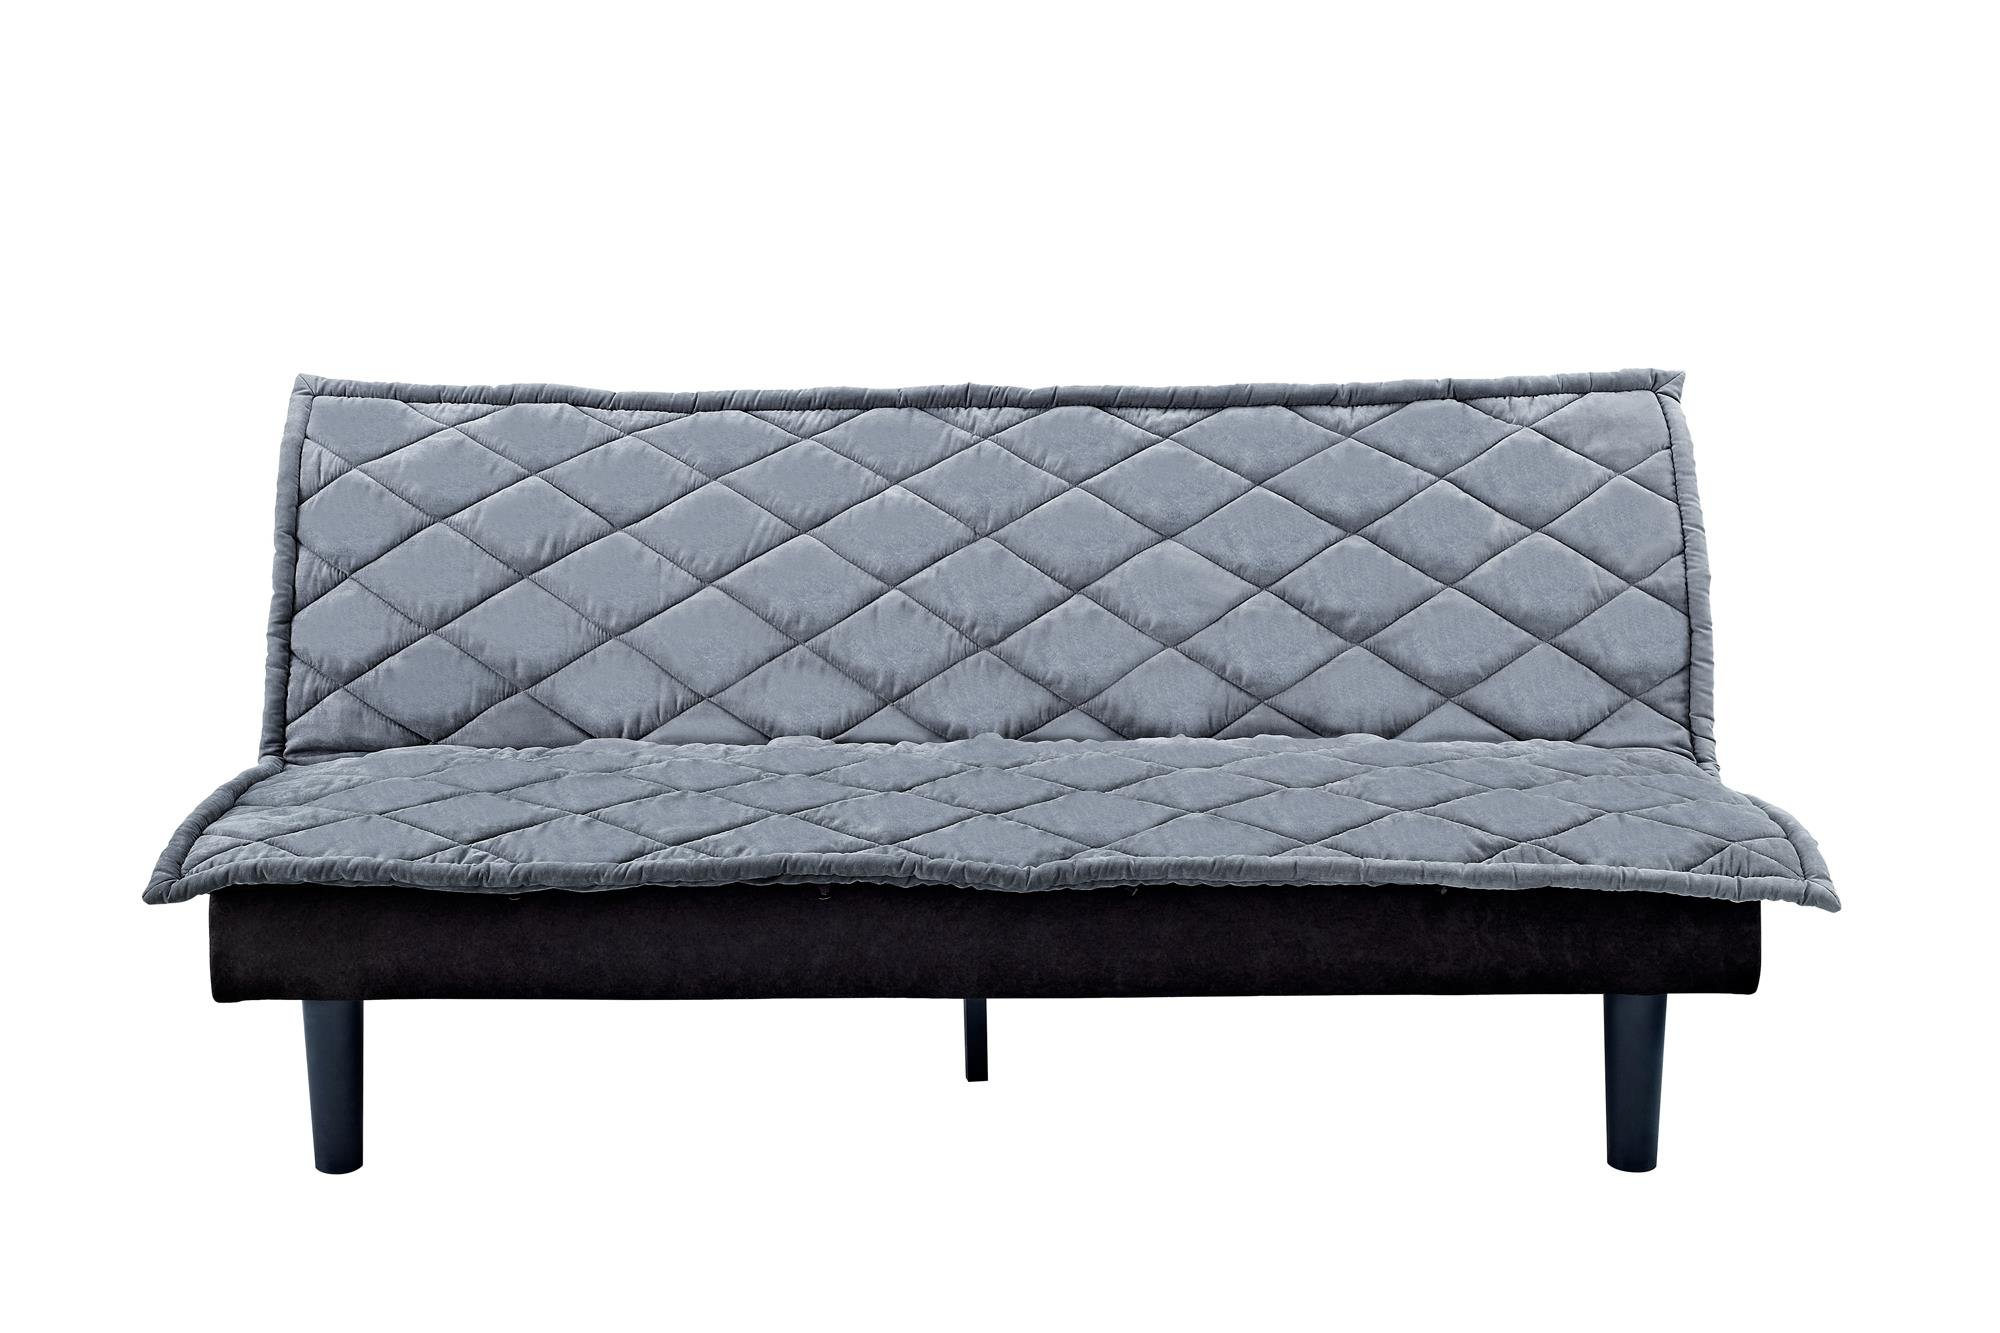 DHP Lancaster Futon Couch with Tufted Upholstered Diamond Design - Silvery Grey by DHP